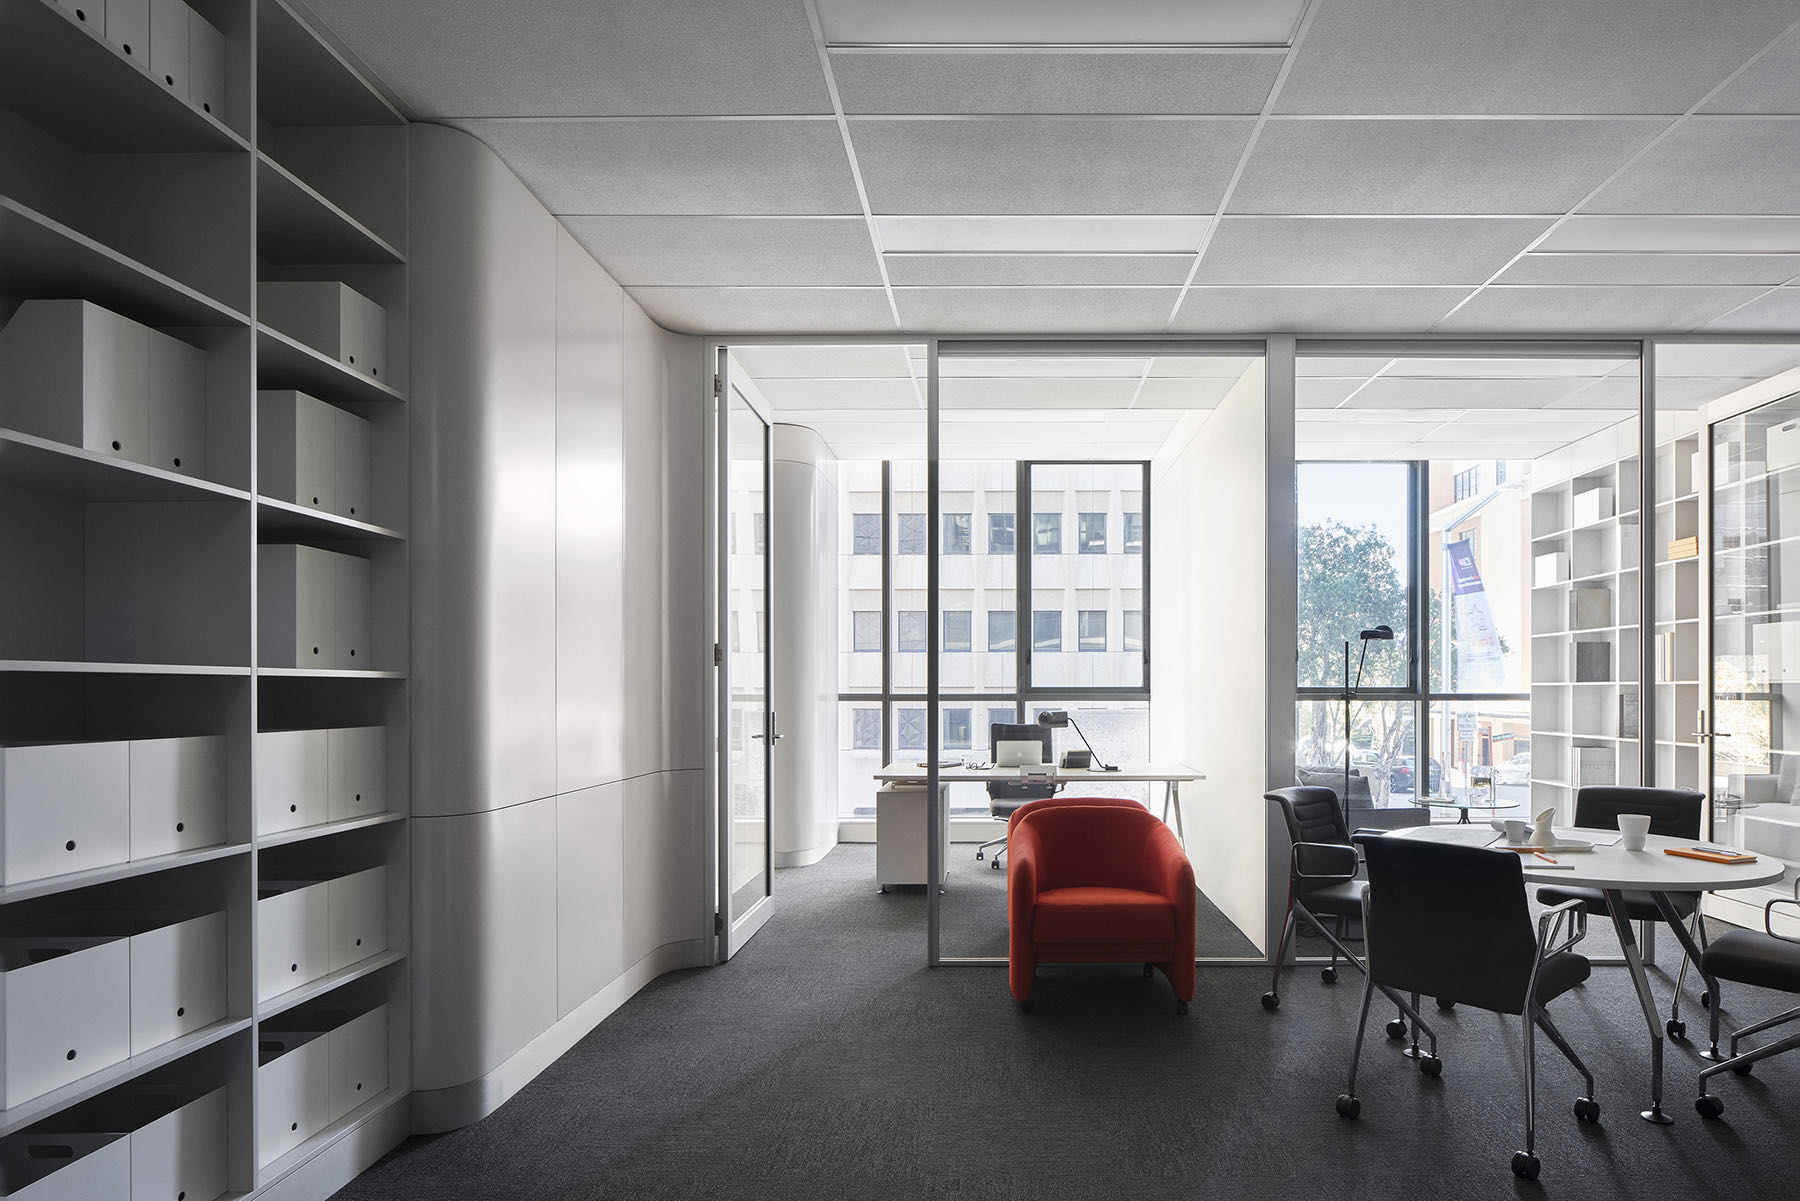 A Look Inside Intercommercial's New Sydney Office